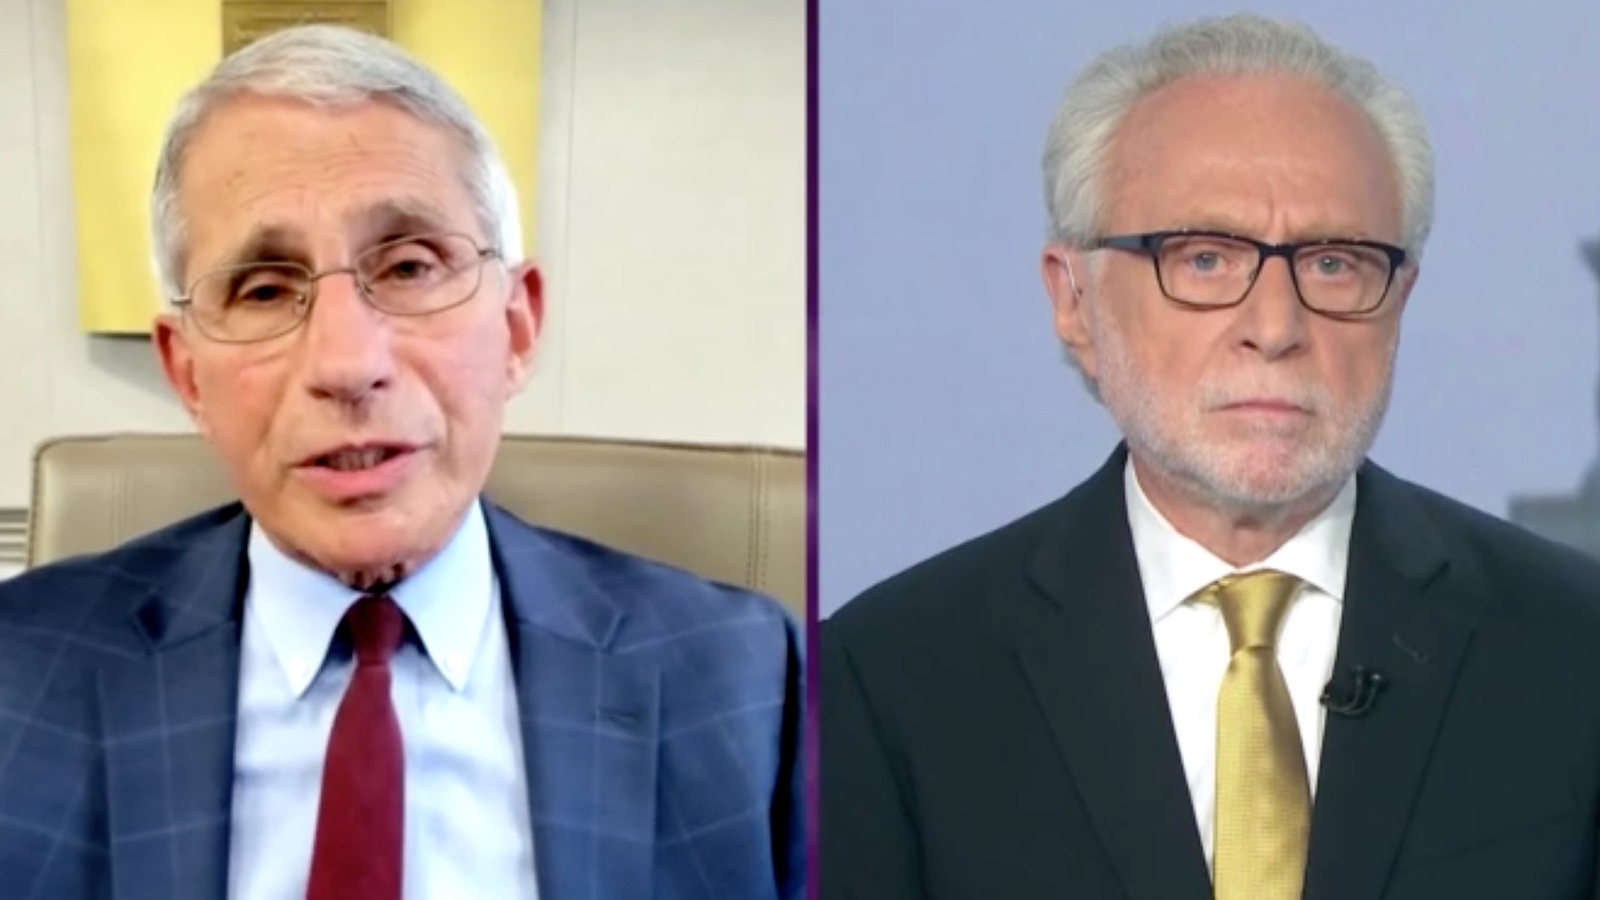 Dr. Anthony Fauci and CNN's Wolf Blitzer on The Situation Room.